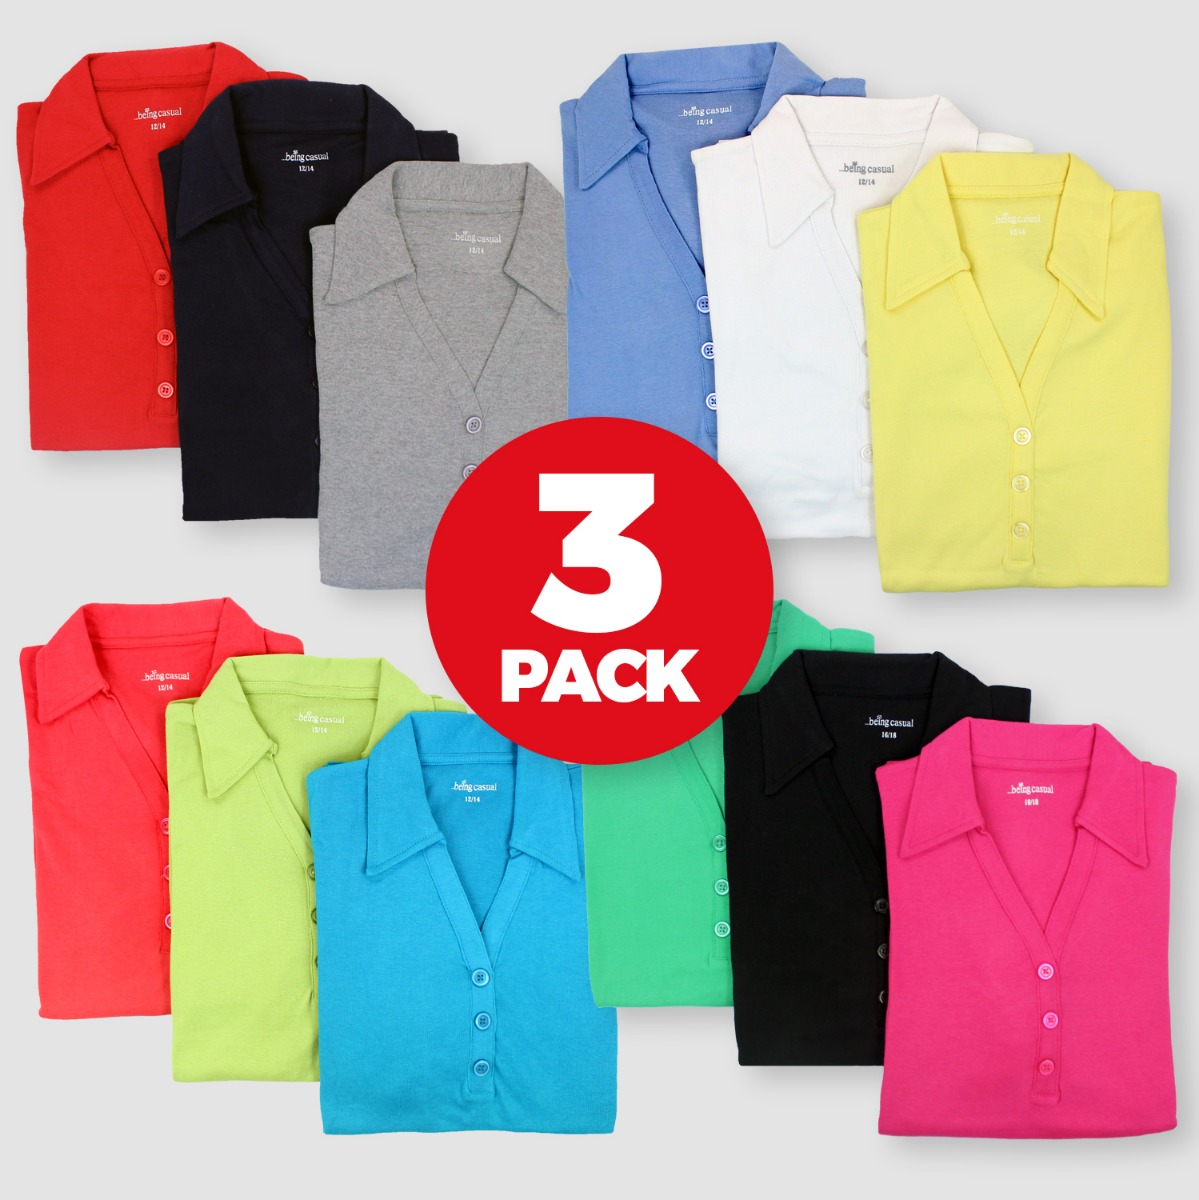 Details about 3 PACK Womens Polo Jersey Tops T Shirts V Neck Short Sleeved Collared Size 12-16